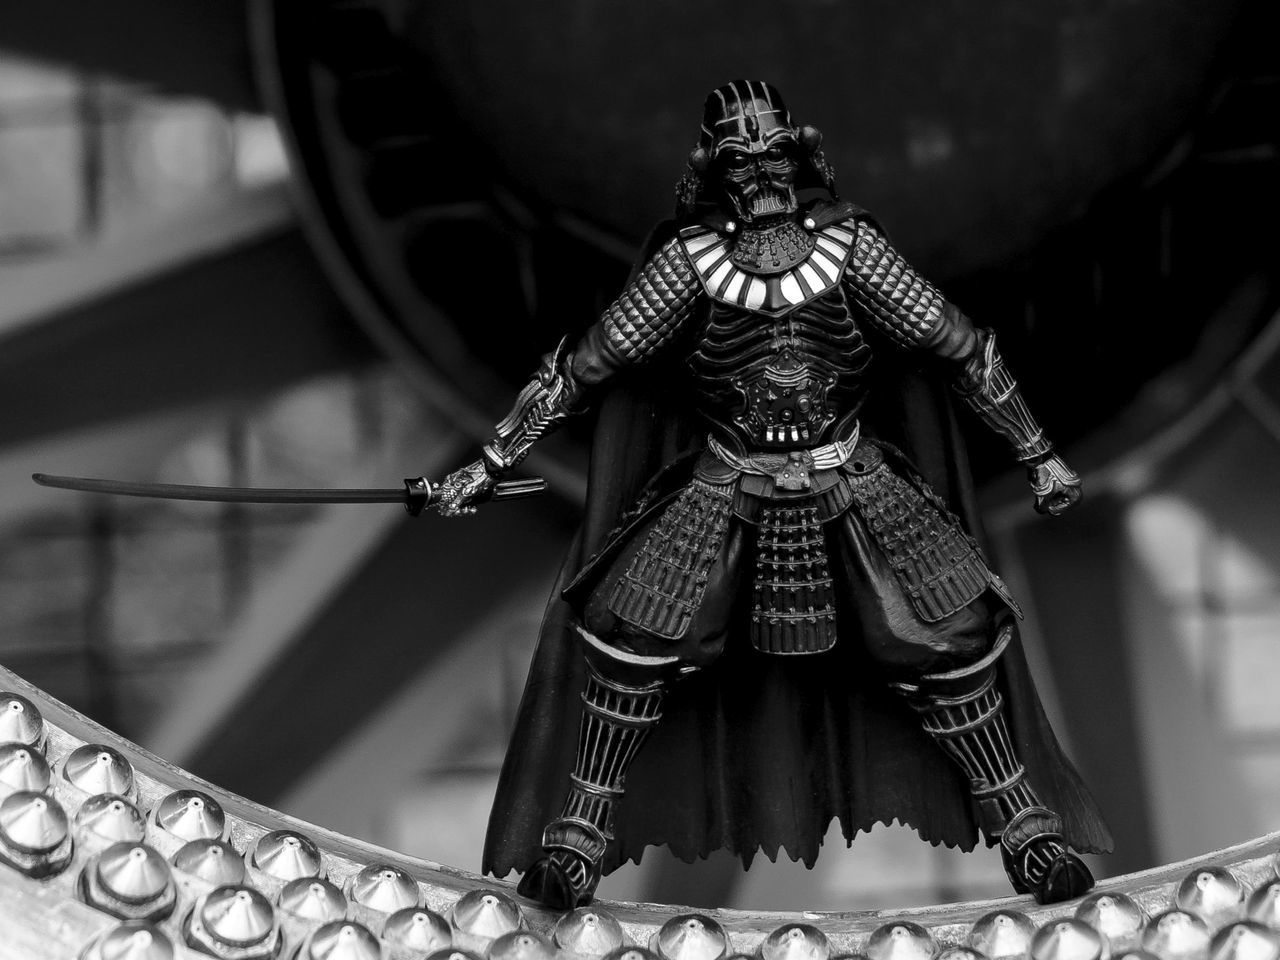 The Dark Lord has returned! Nobody expected him to show up, but the path of the dark side of Force is hideous and... Action Actionfigures Black And White Dark Lord Darkside Darth Vader Urban Welcome To Black